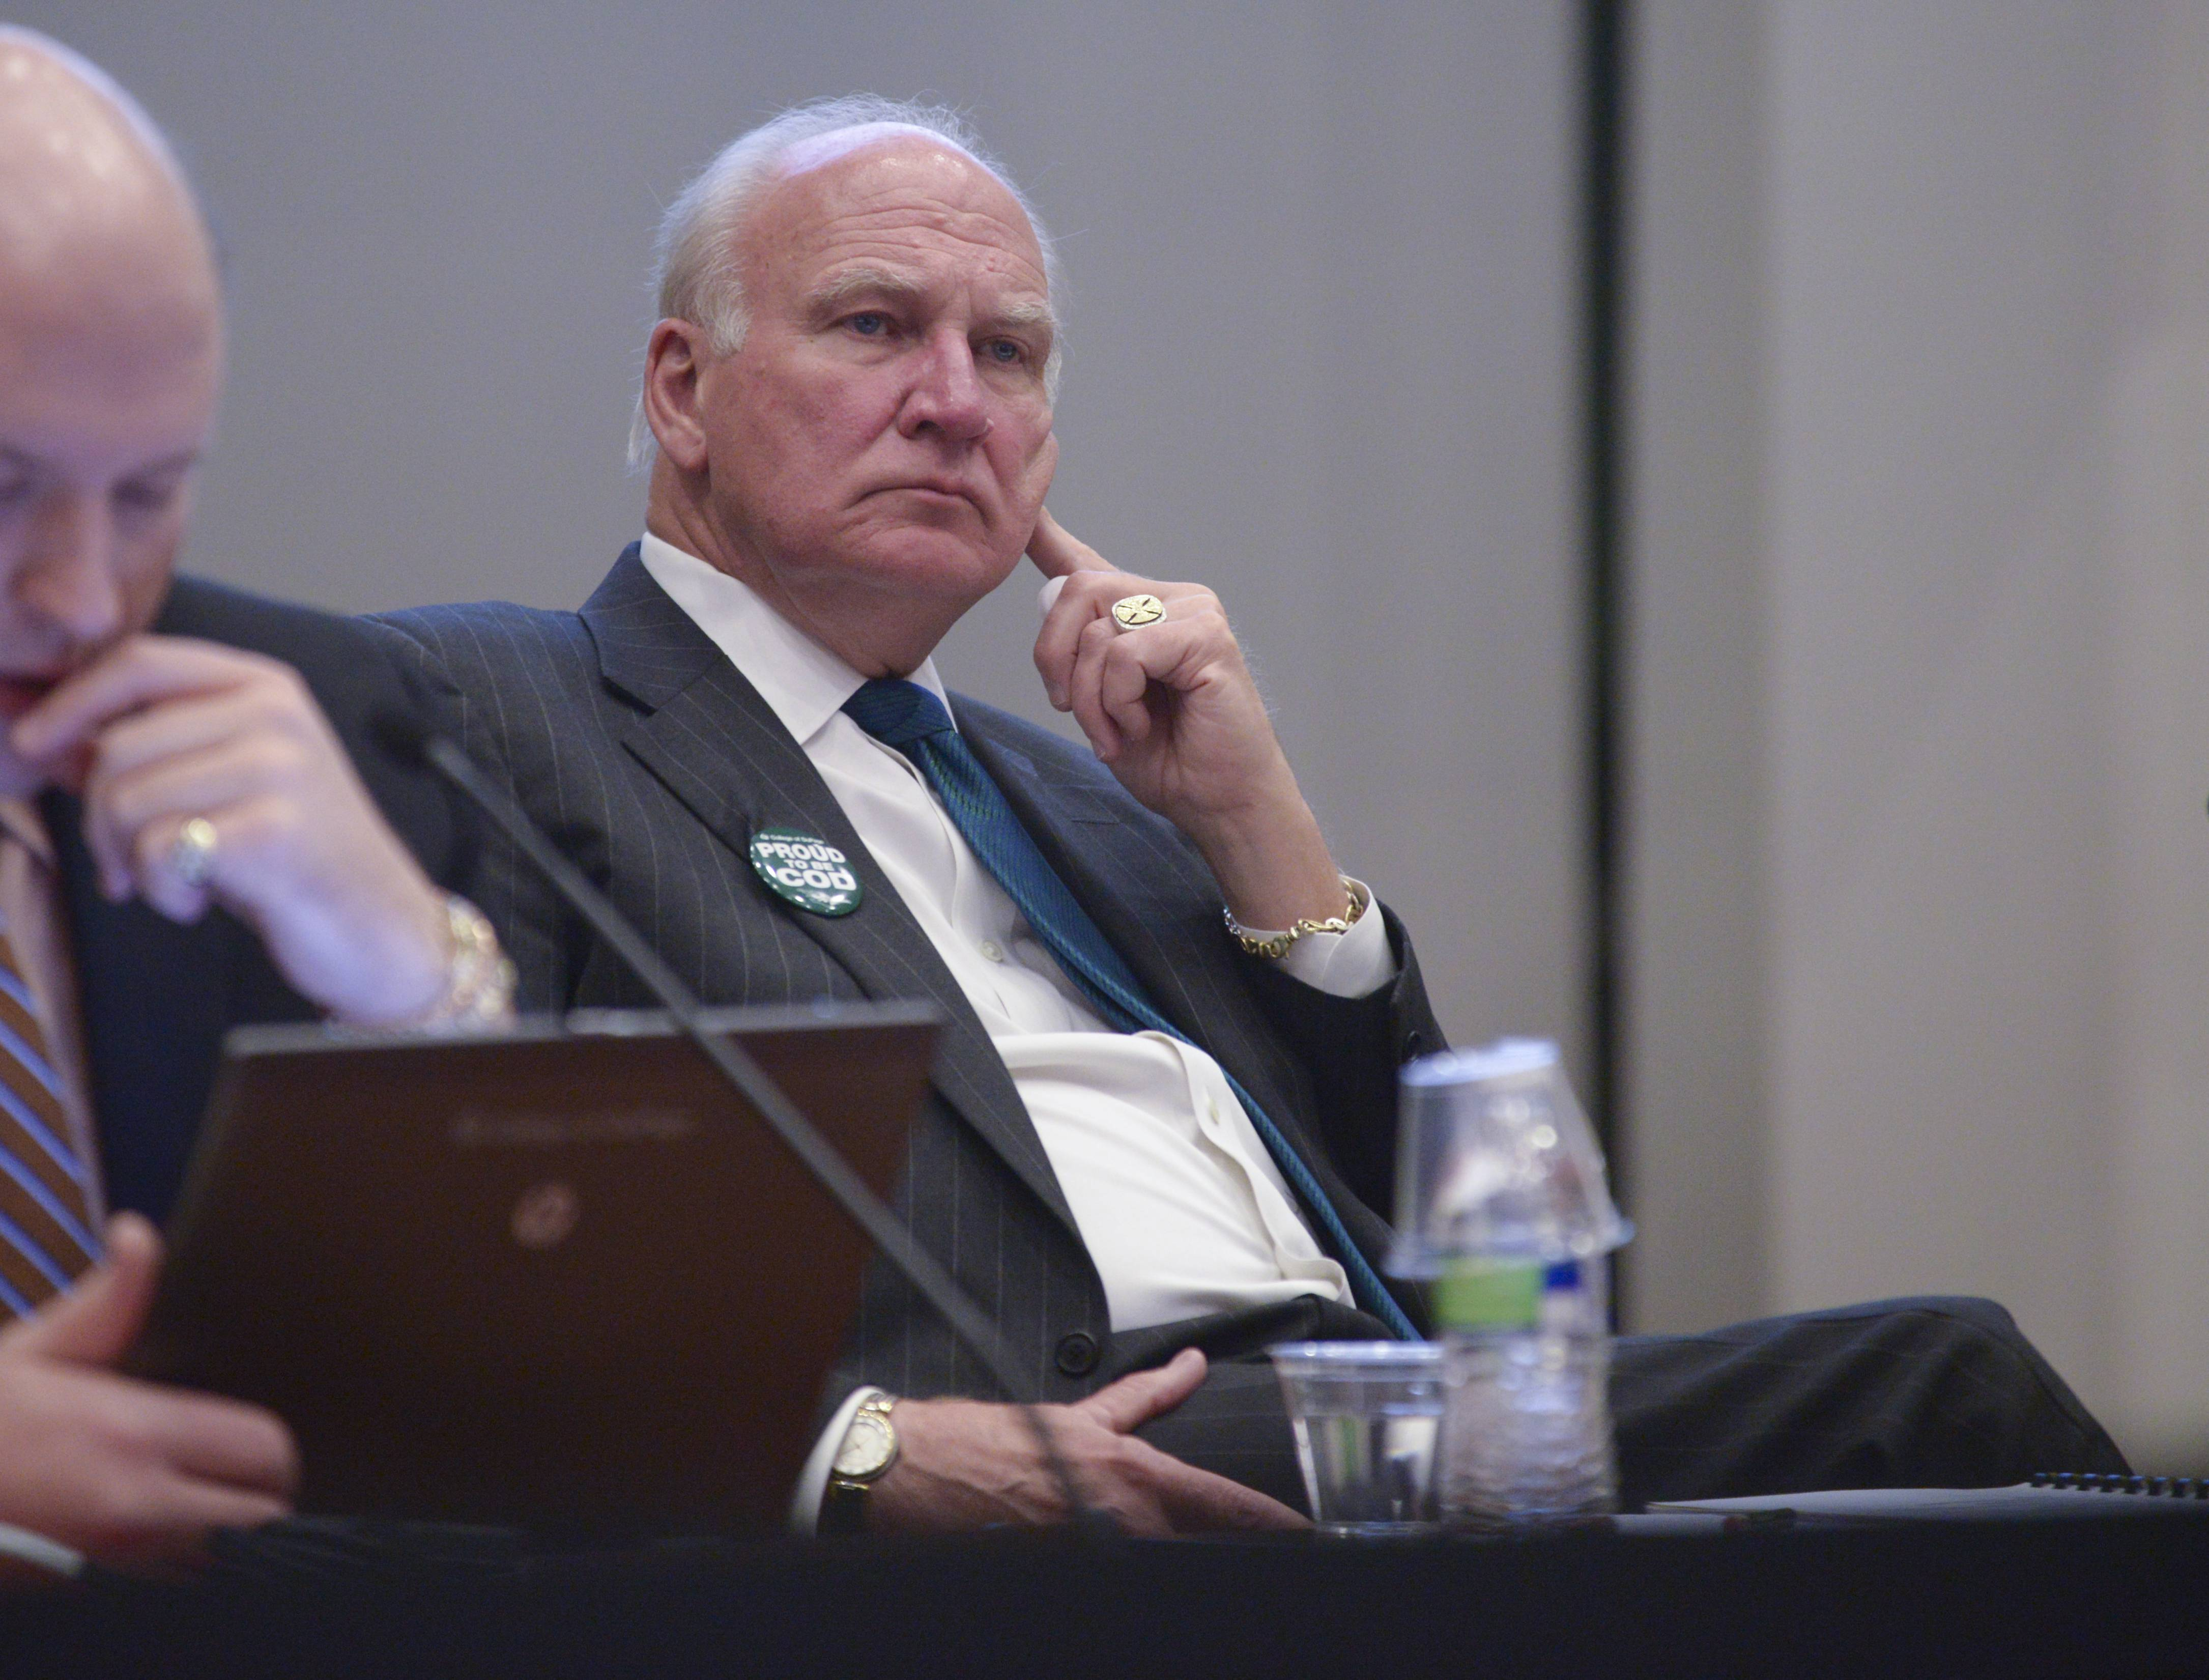 Lawmakers want to look deeper into College of DuPage spending